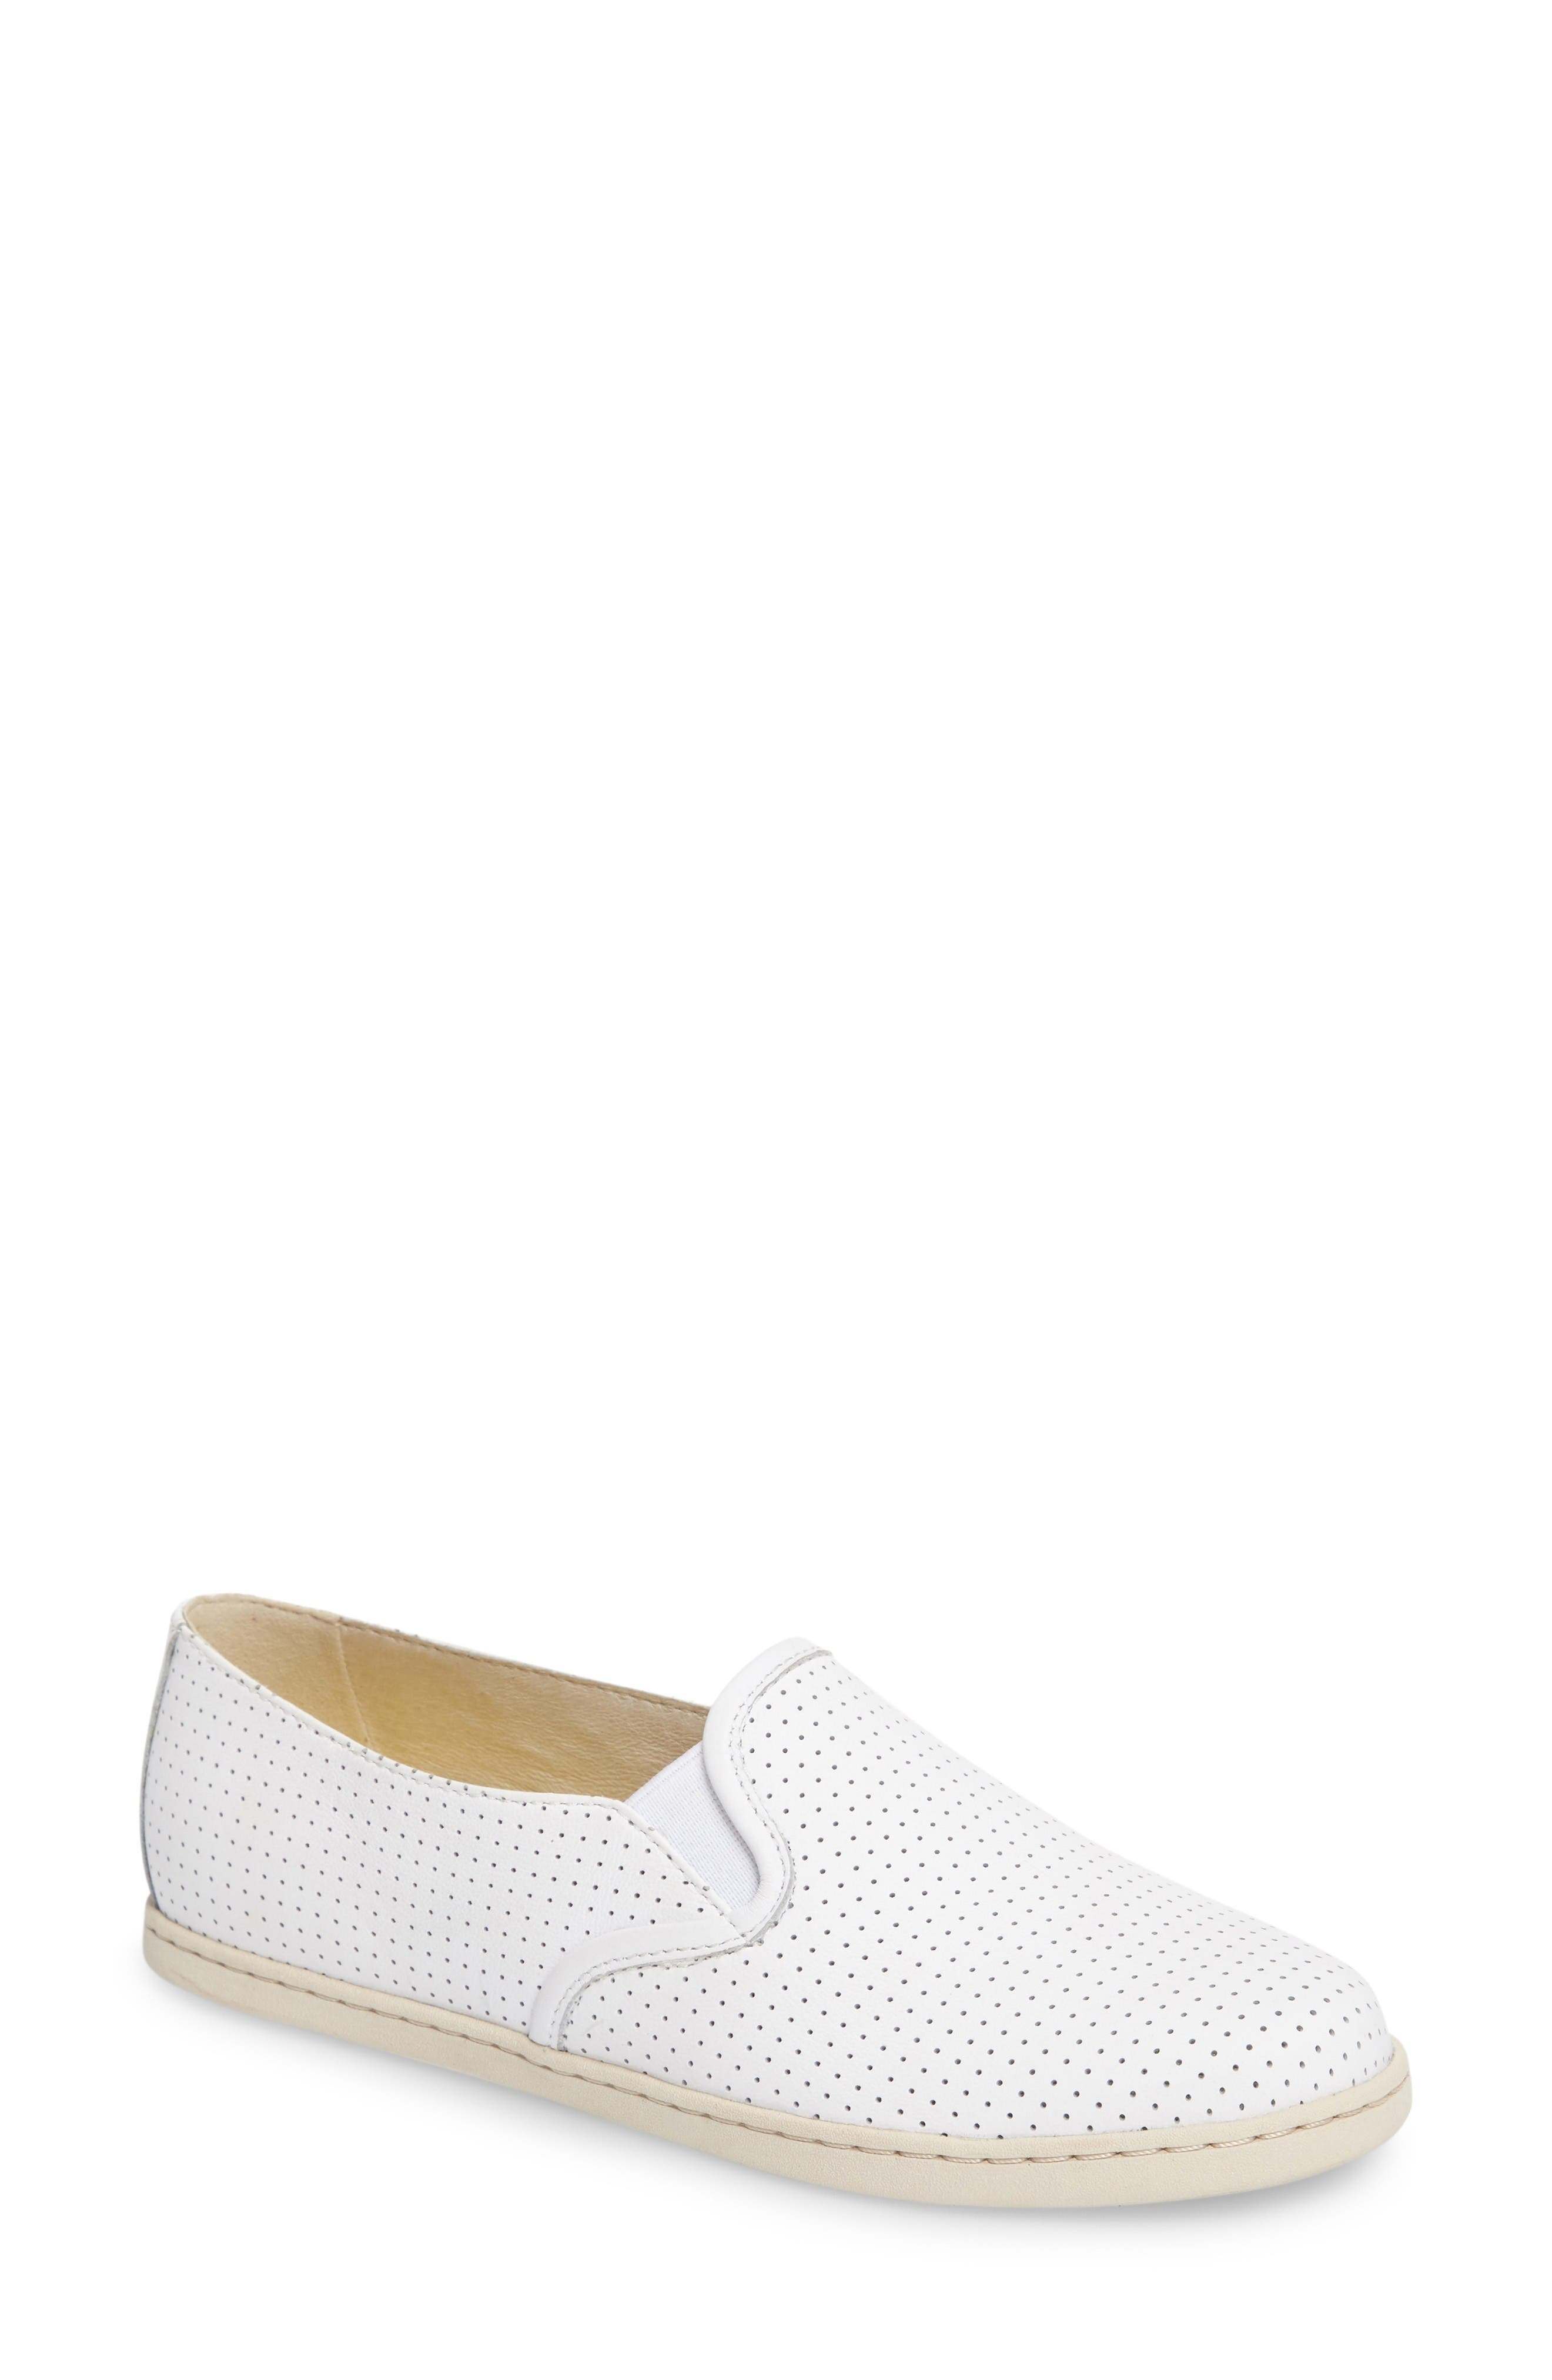 Camper Uno Perforated Slip-On Sneaker (Women)